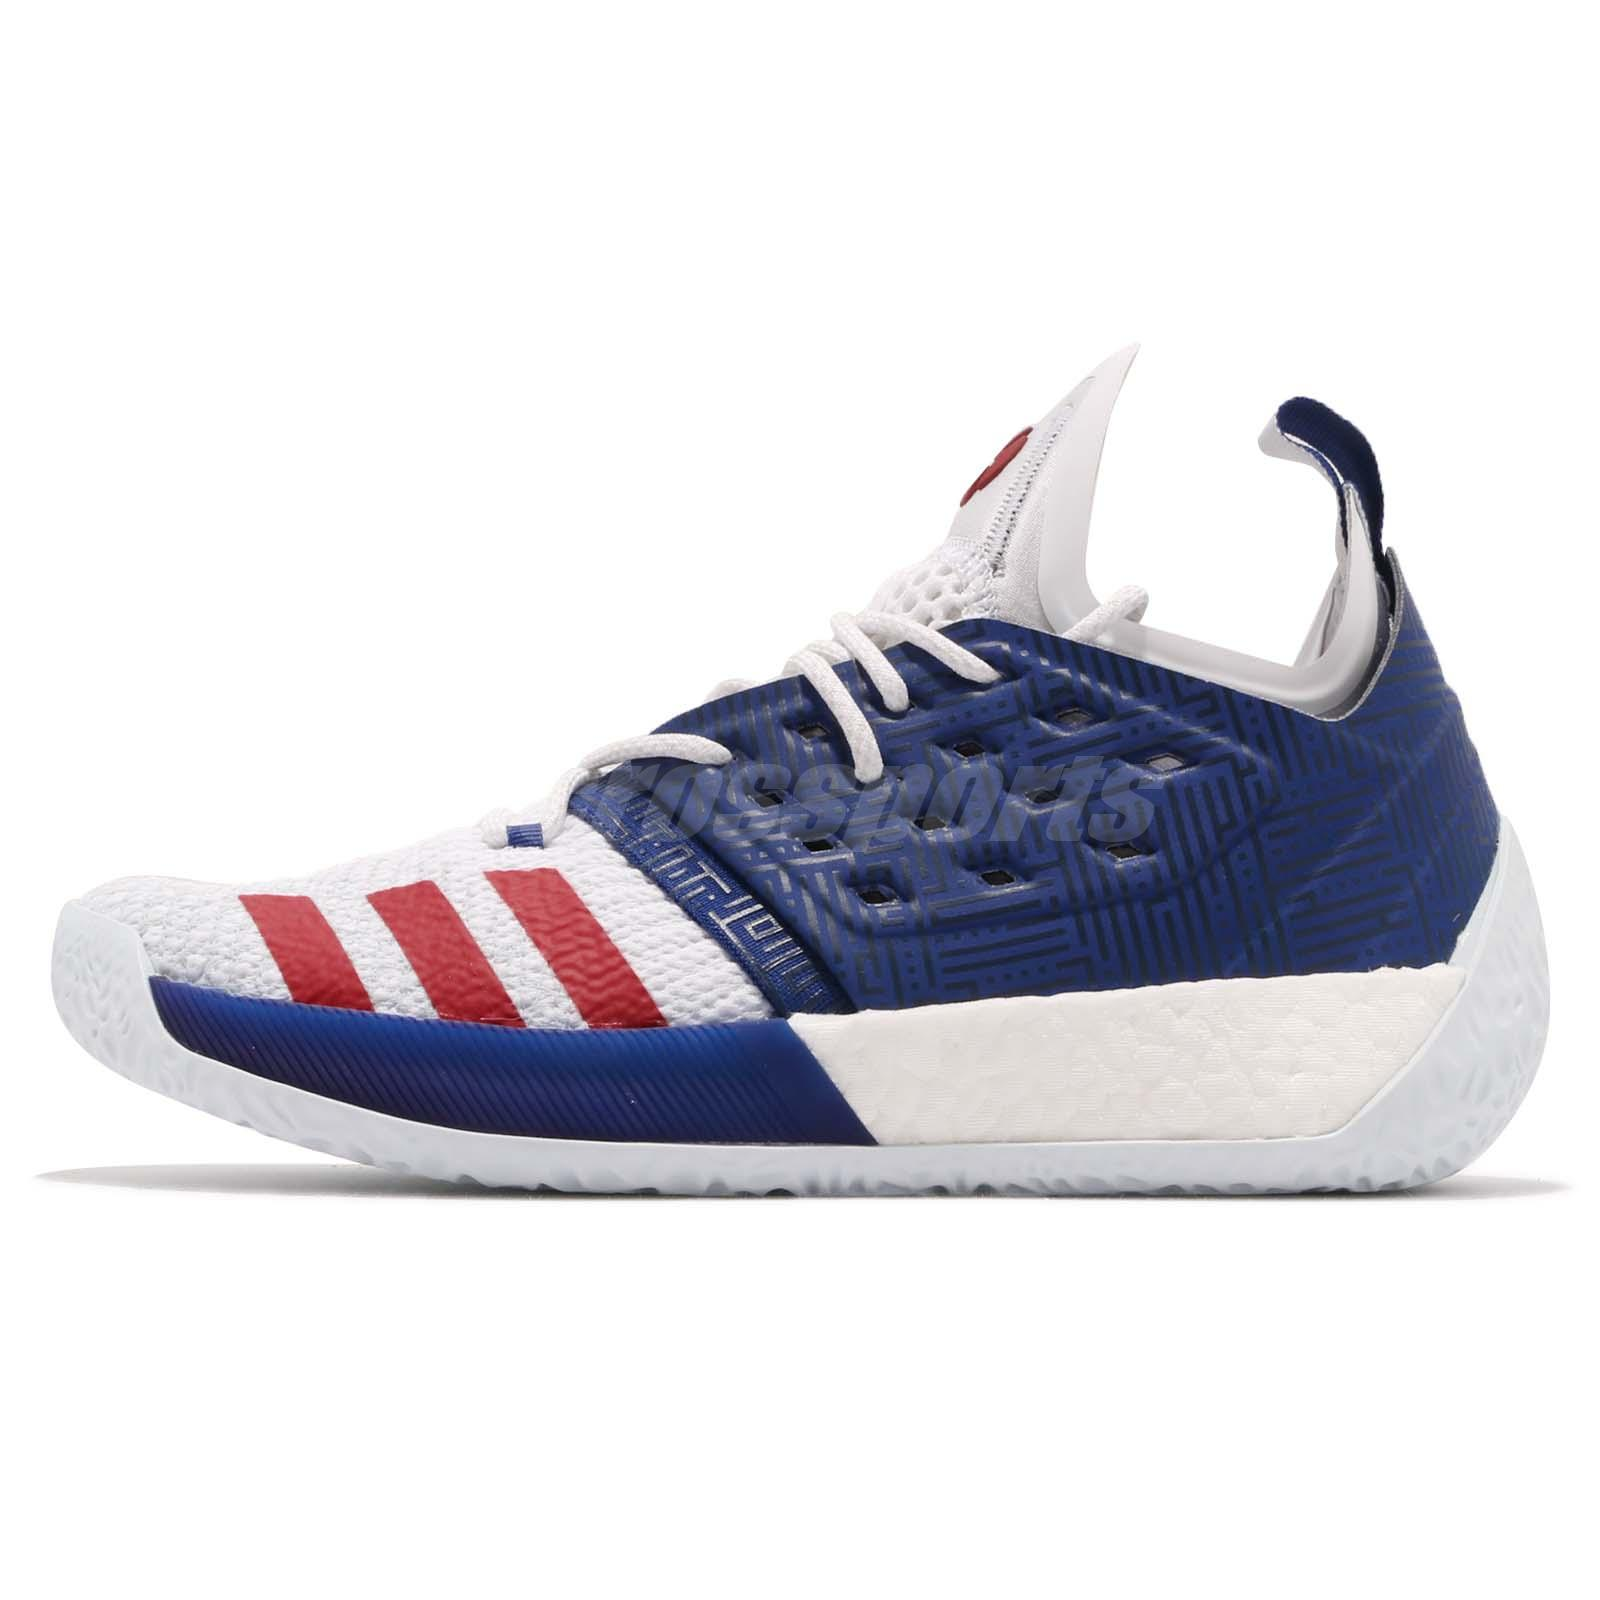 07851c07eca1 adidas Harden Vol. 2 II James USA Boost Blue Red White Men Shoes Sneakers  AQ0026